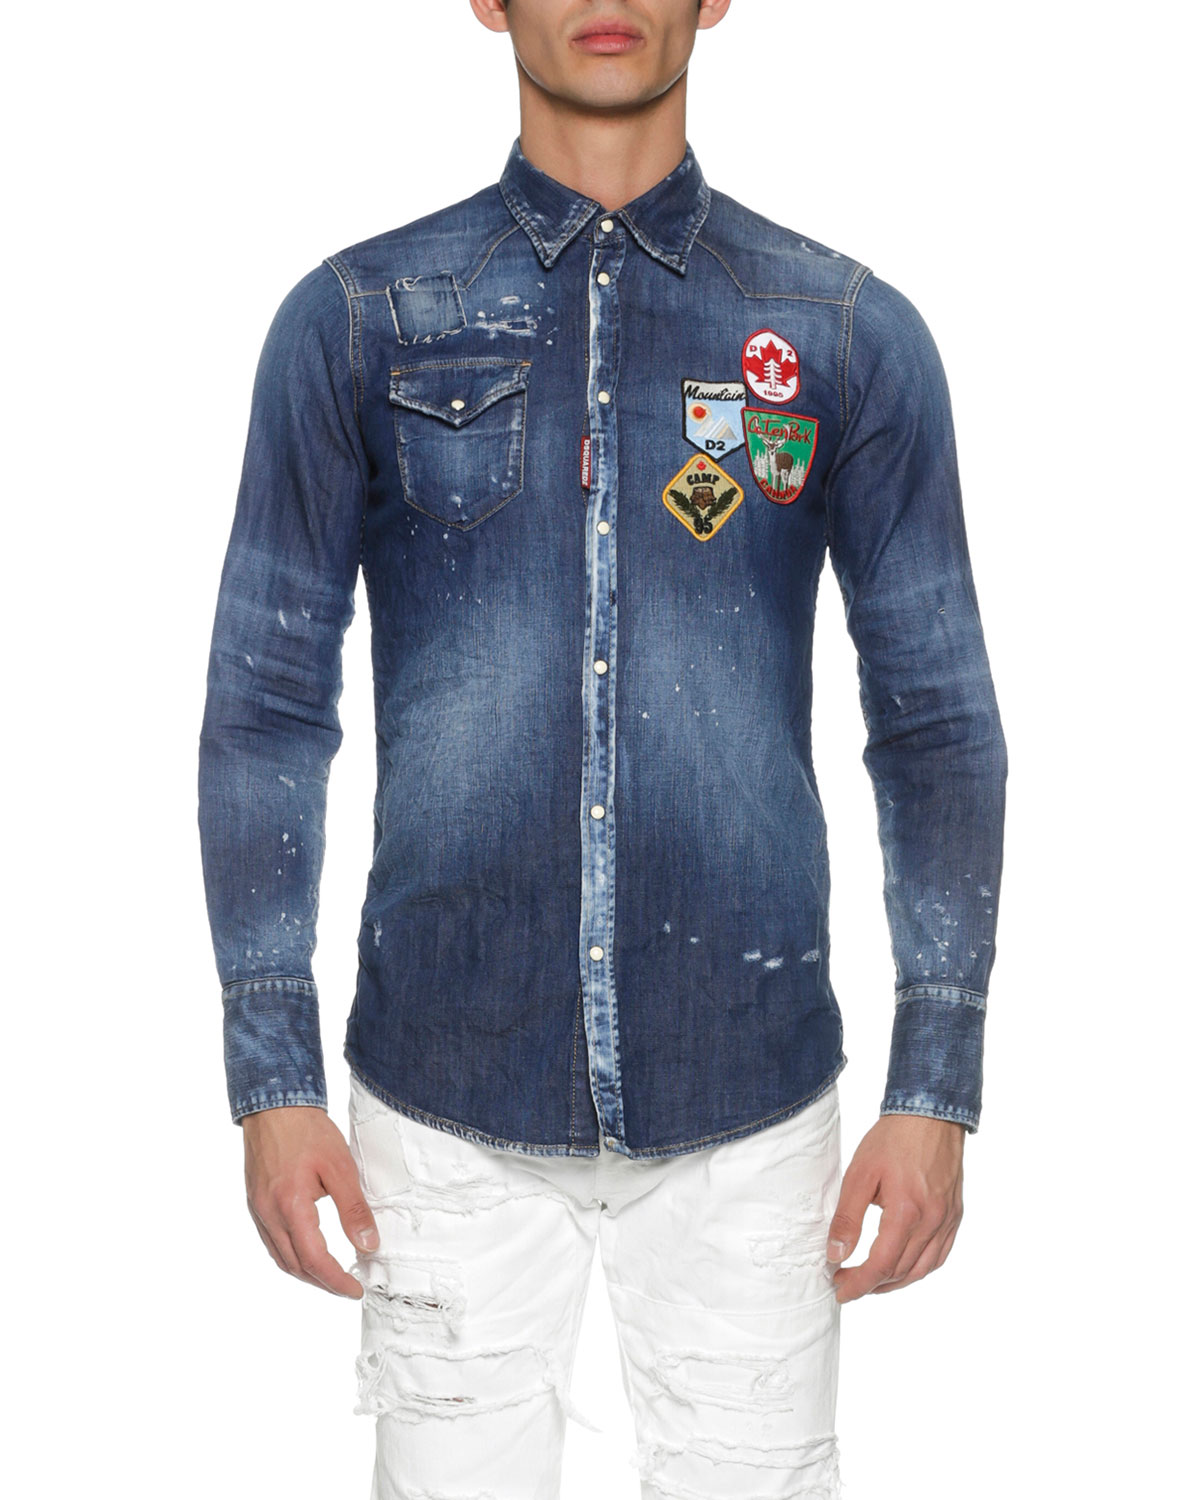 895fbac3b1a Dsquared2 Denim Western Shirt with Patches